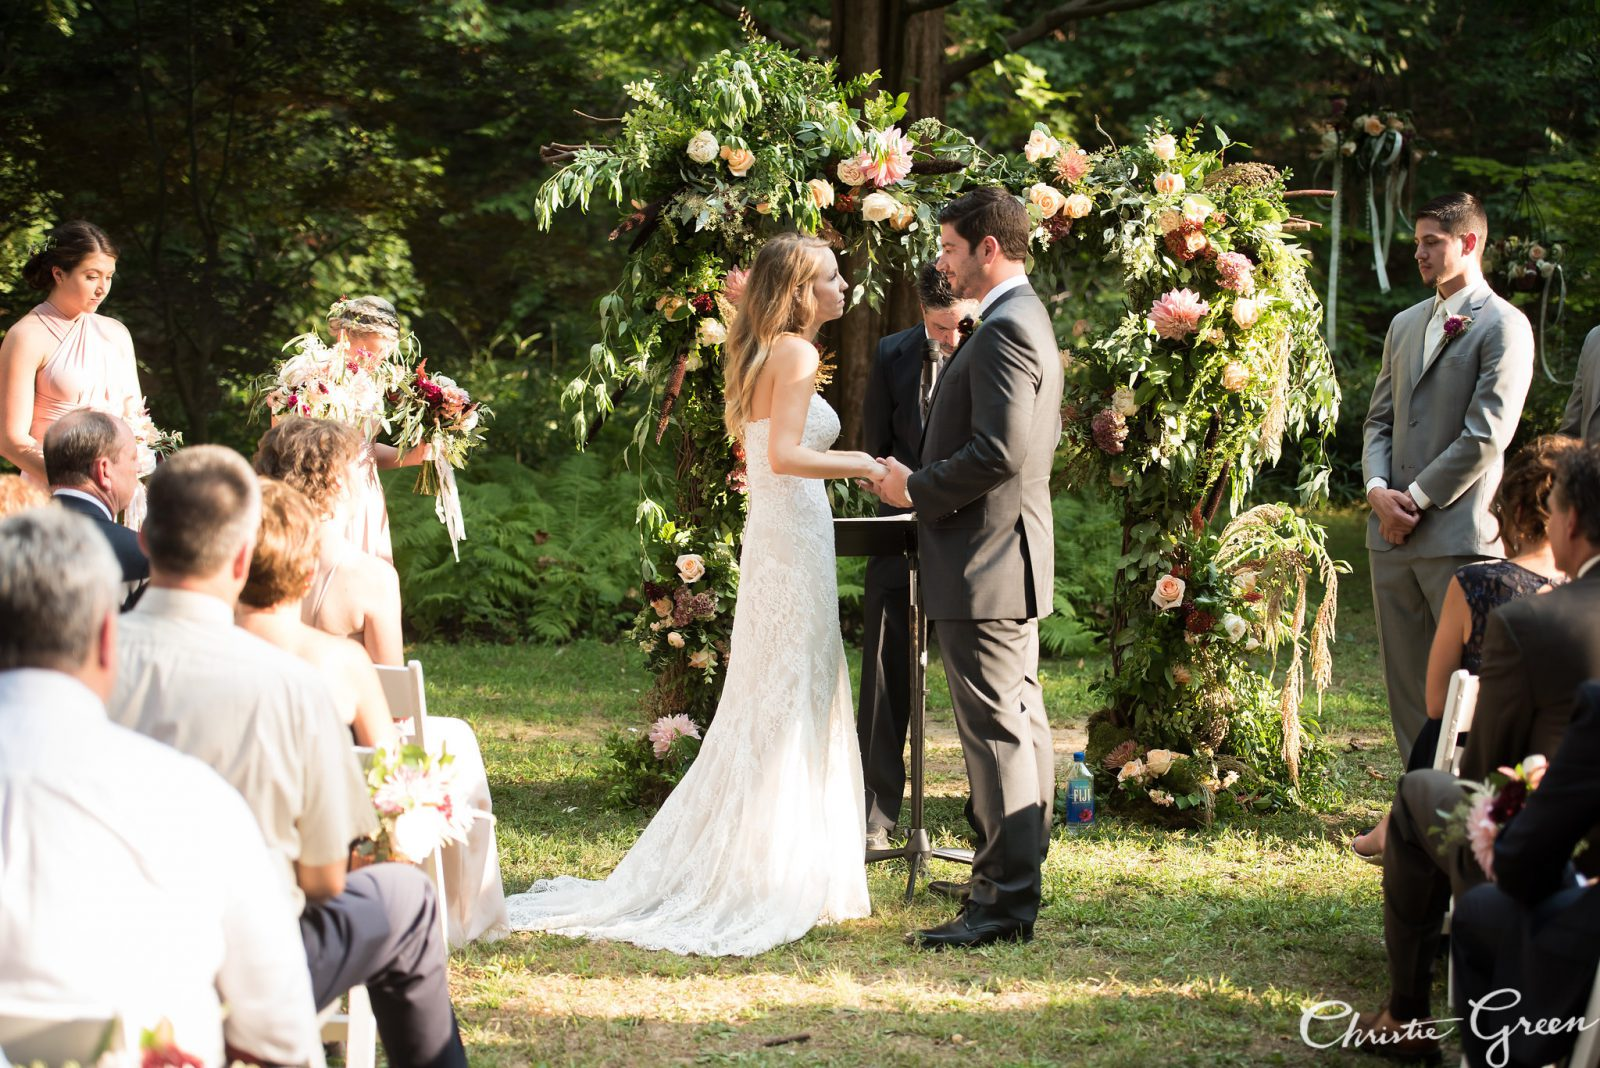 Outdoor Summer Wedding at The Old Mill with Lush Flower Arch